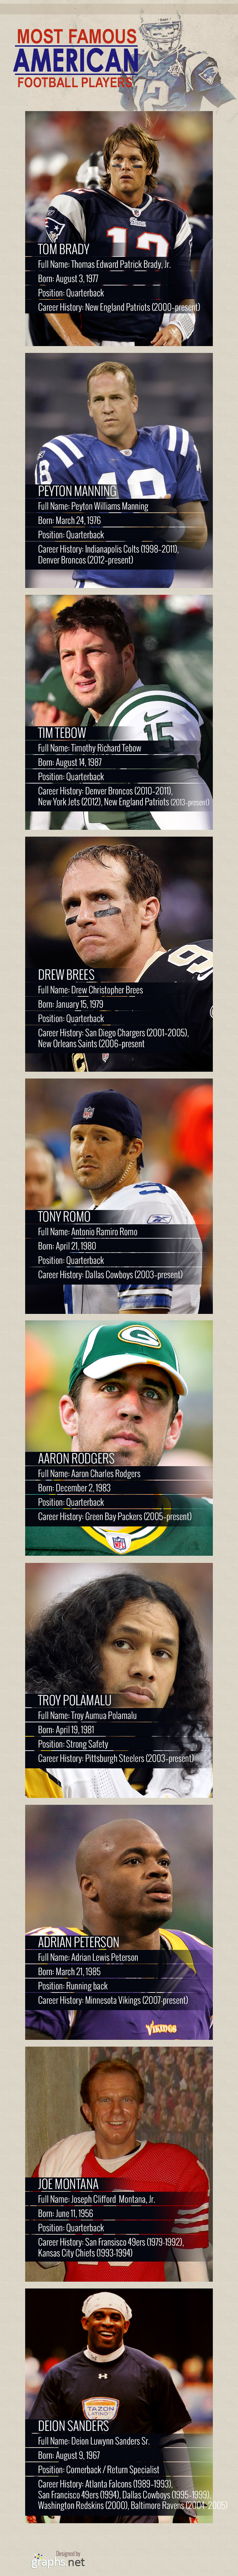 Most Famous American Football Players